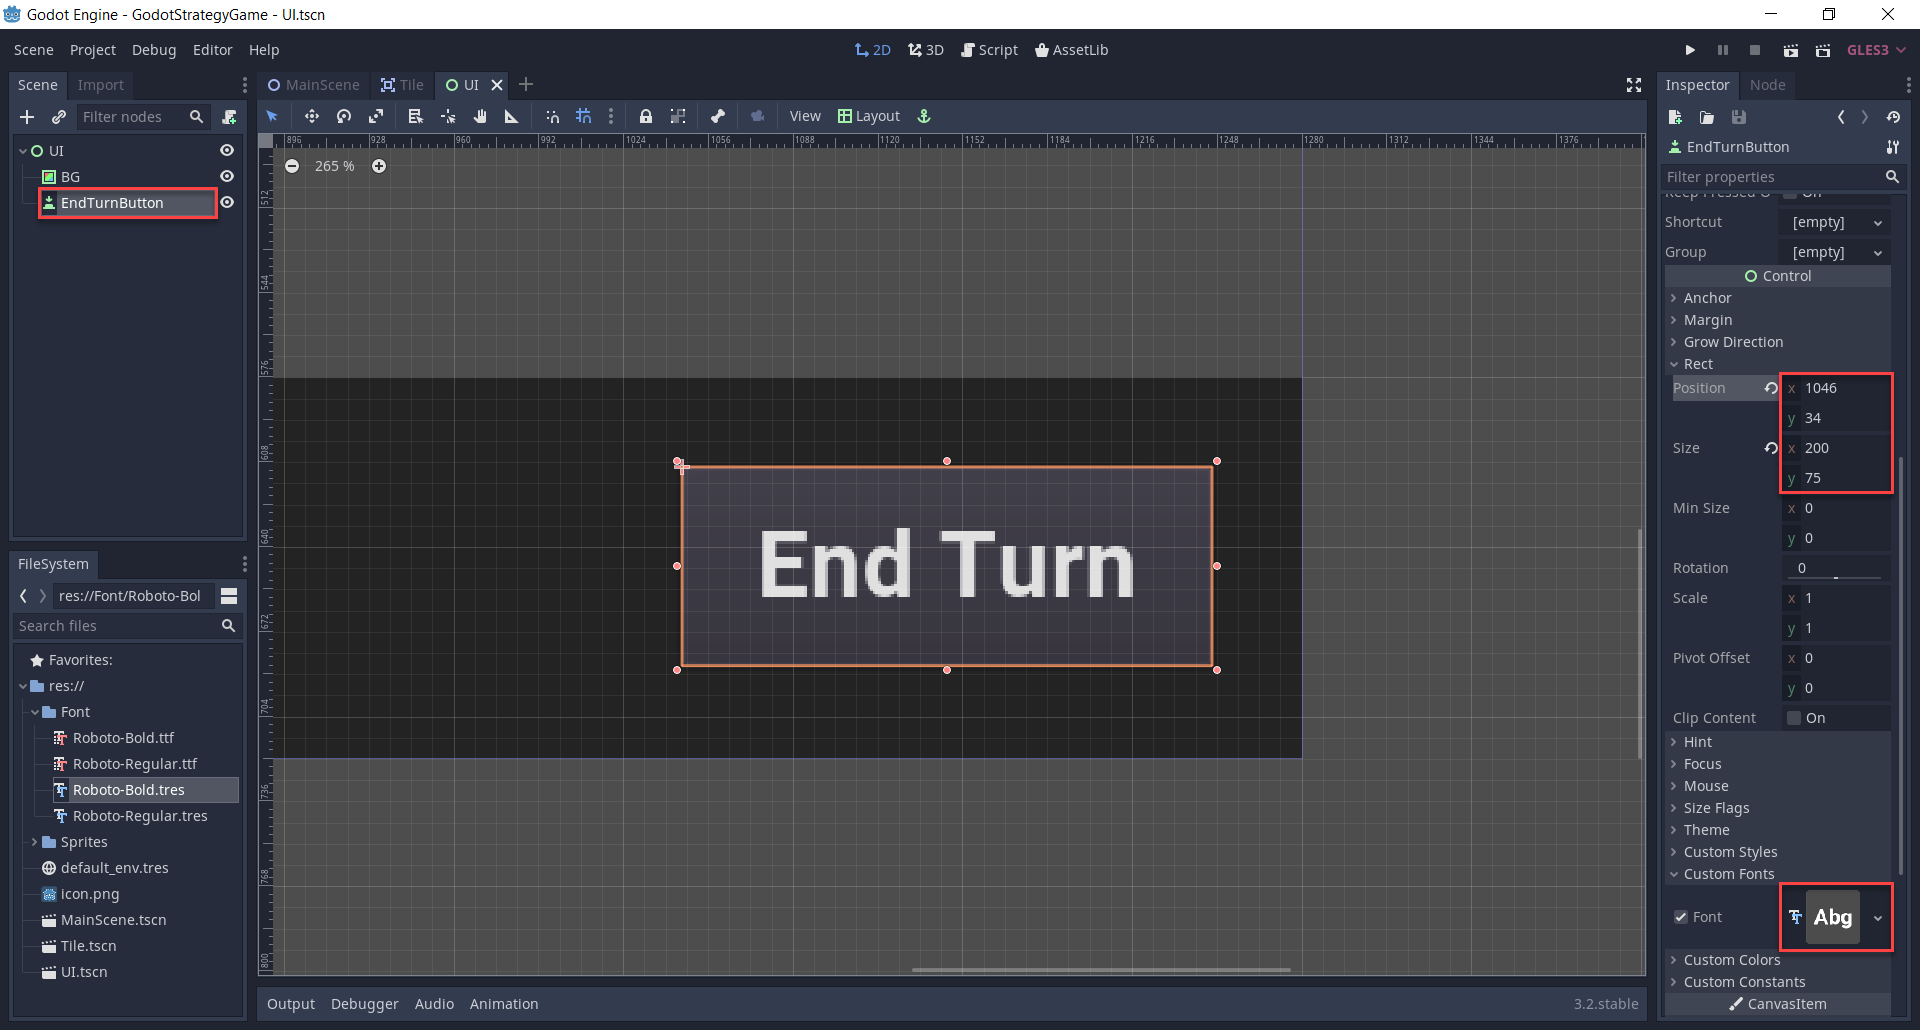 Creating the end turn button.